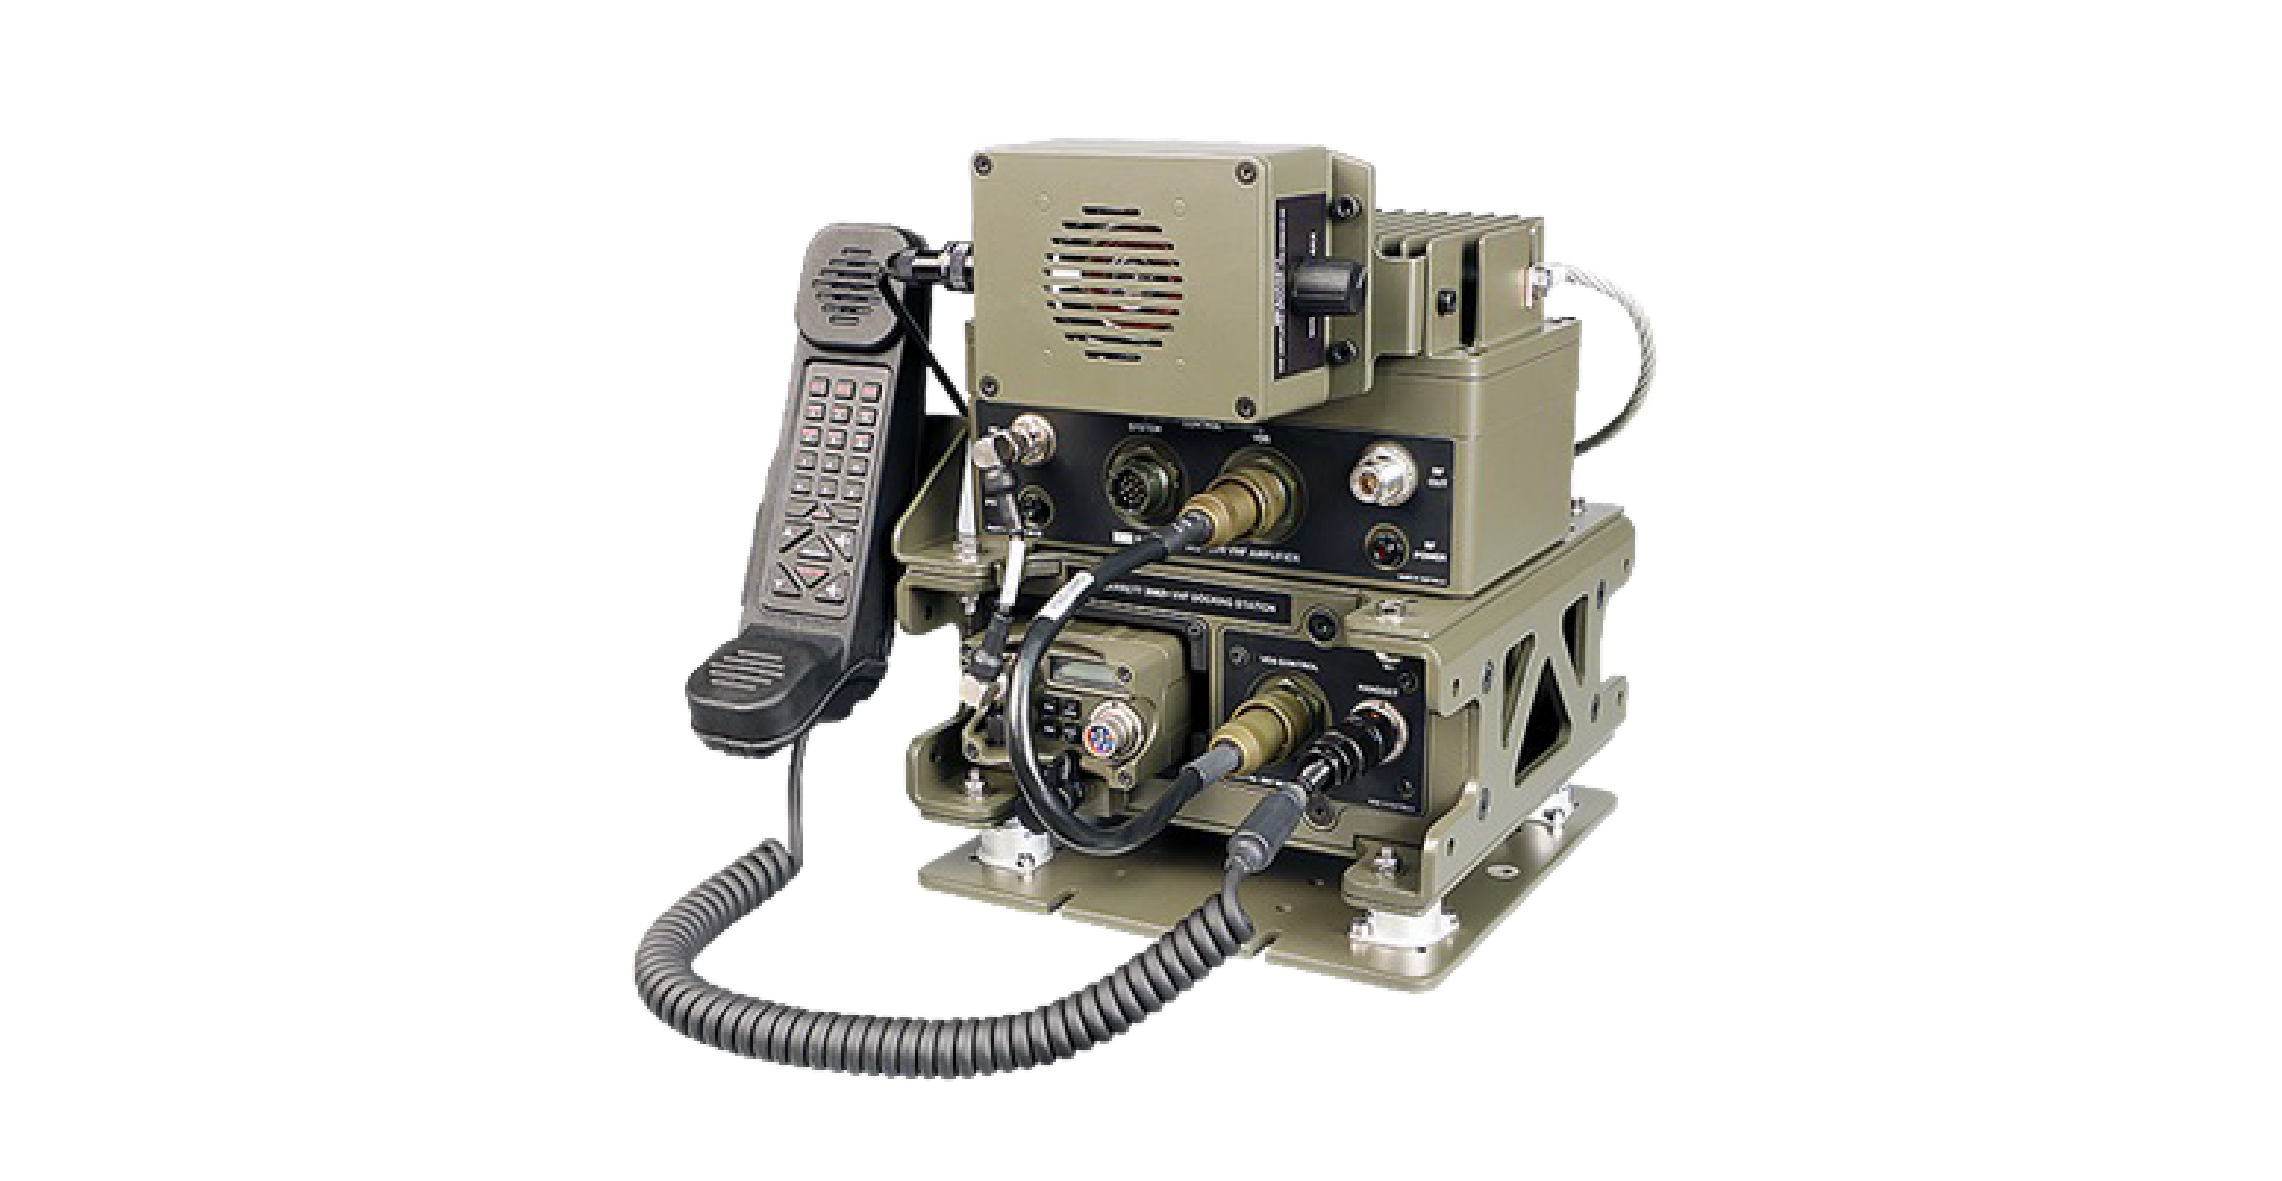 PRC-2082+ 50 W VHF Mobile package